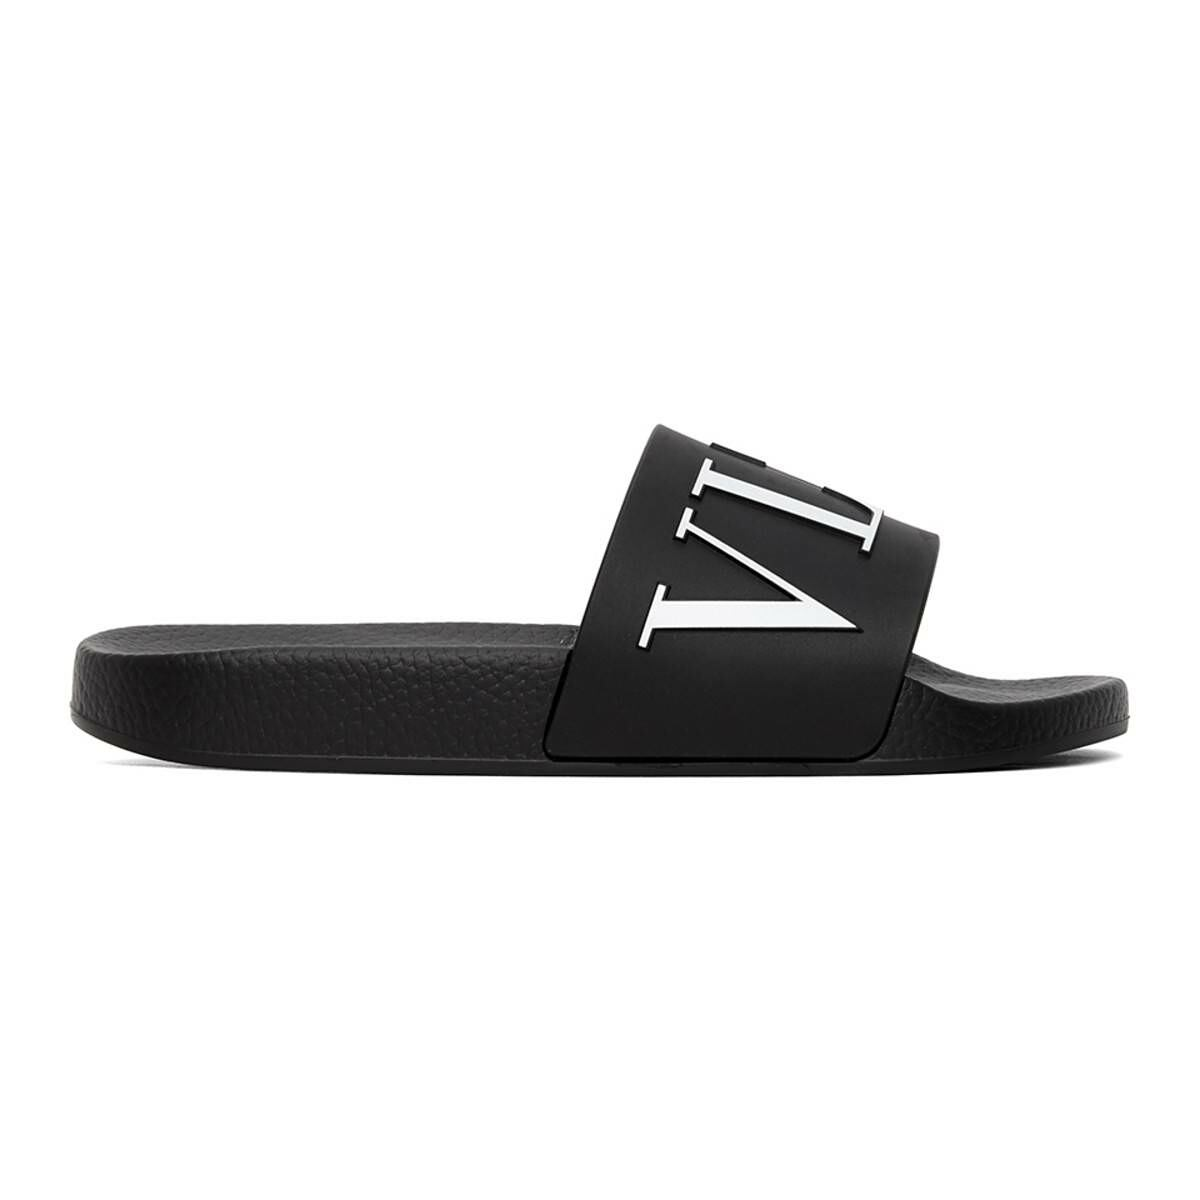 Valentino Black and White Valentino Garavani VLTN Slides Ssense USA MEN Men SHOES Mens SANDALS